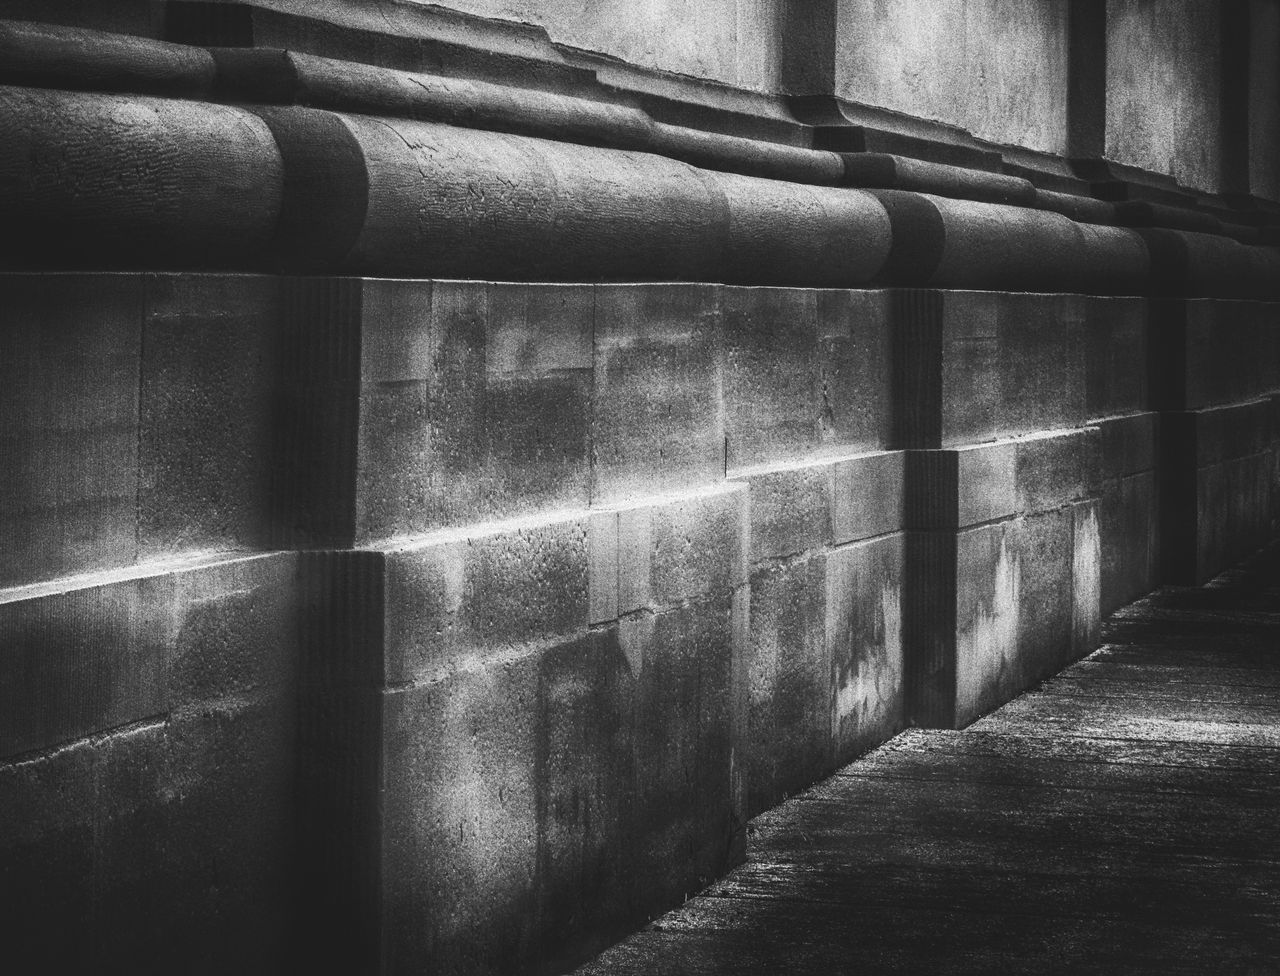 architecture, built structure, wall - building feature, no people, indoors, pattern, in a row, day, staircase, wall, pipe - tube, building, absence, direction, empty, industry, repetition, the way forward, concrete